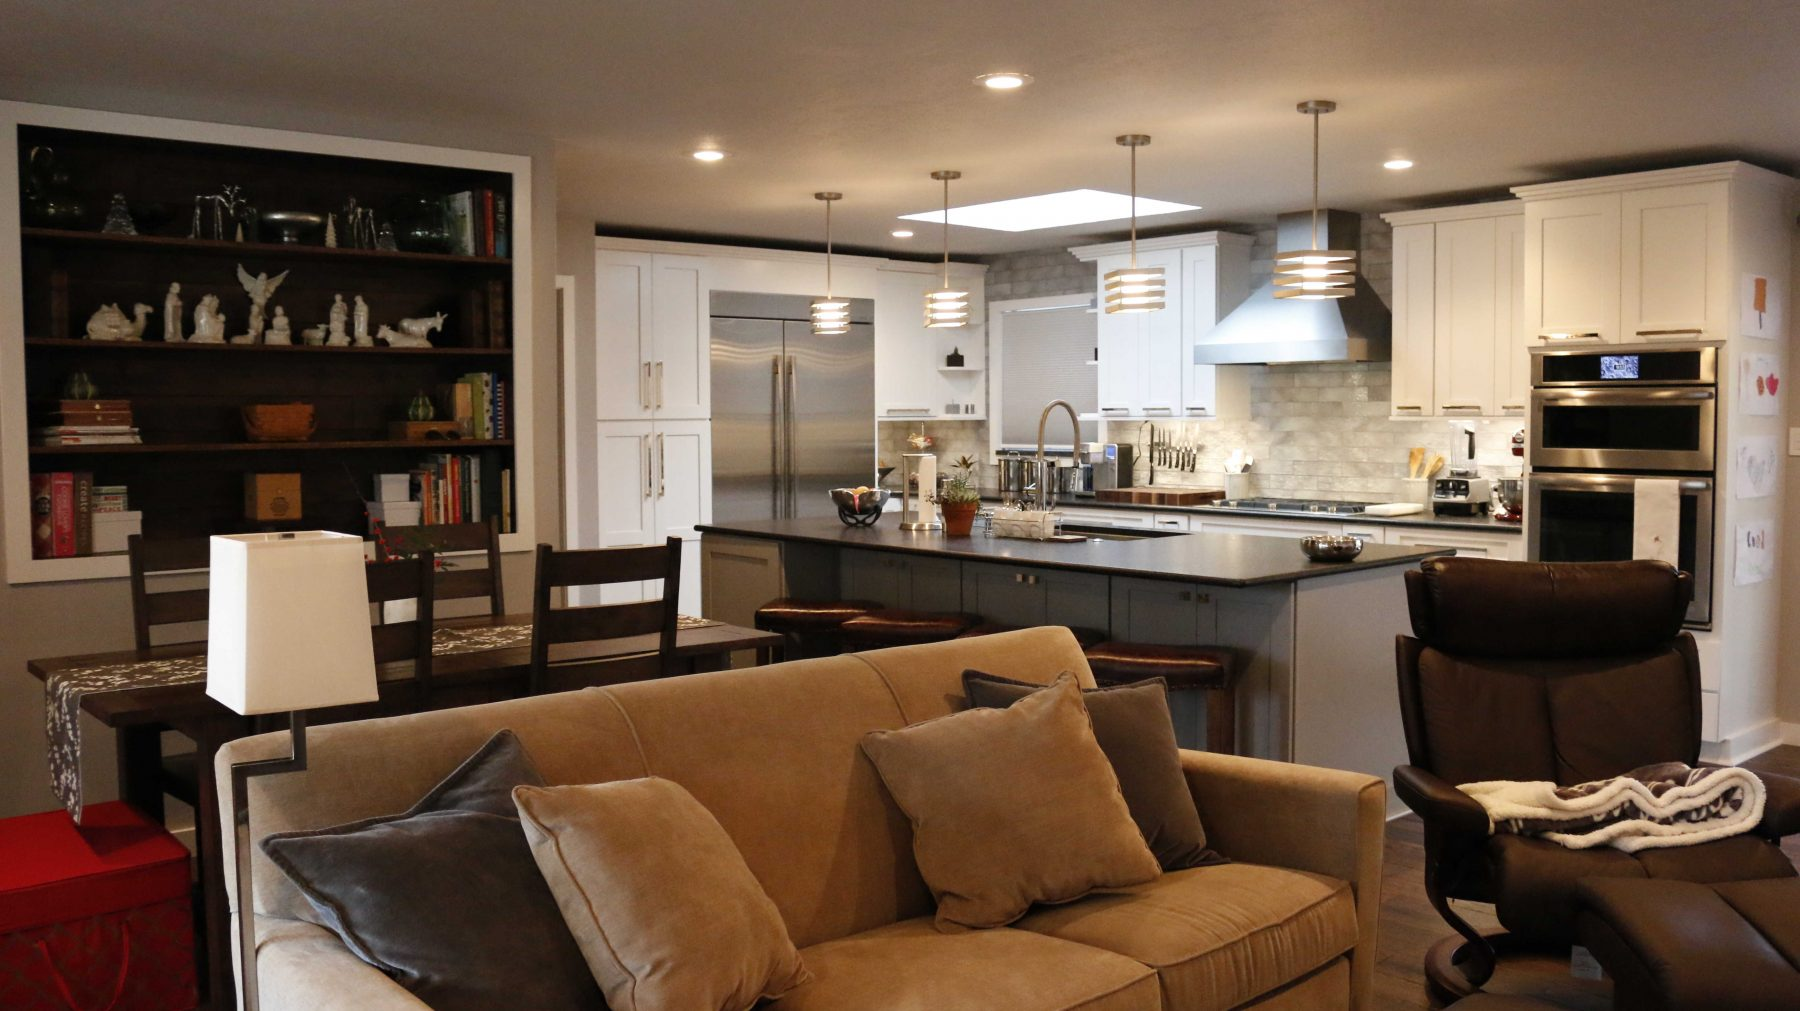 Standard kitchen bath kitchen remodeling knoxville for Bath remodel knoxville